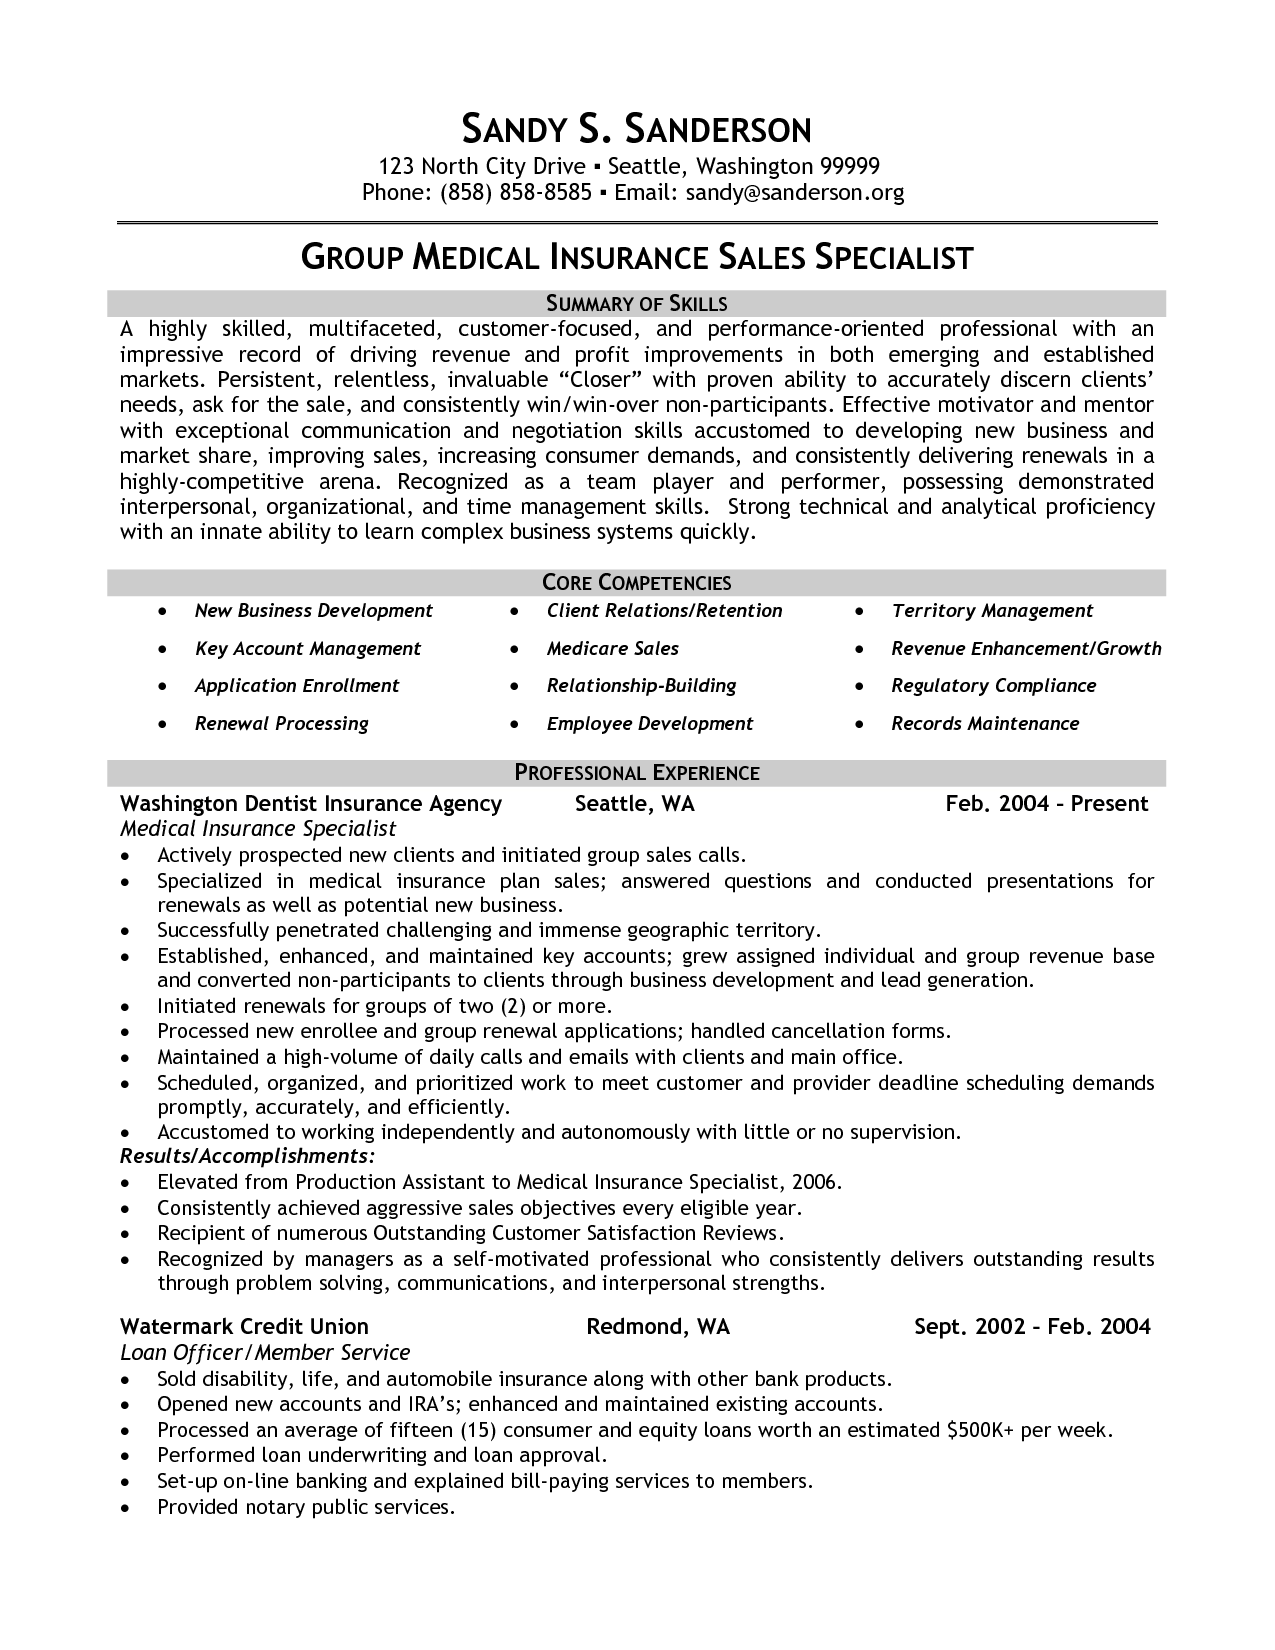 Medical Insurance Specialist Resume Example Group Medical Insurance